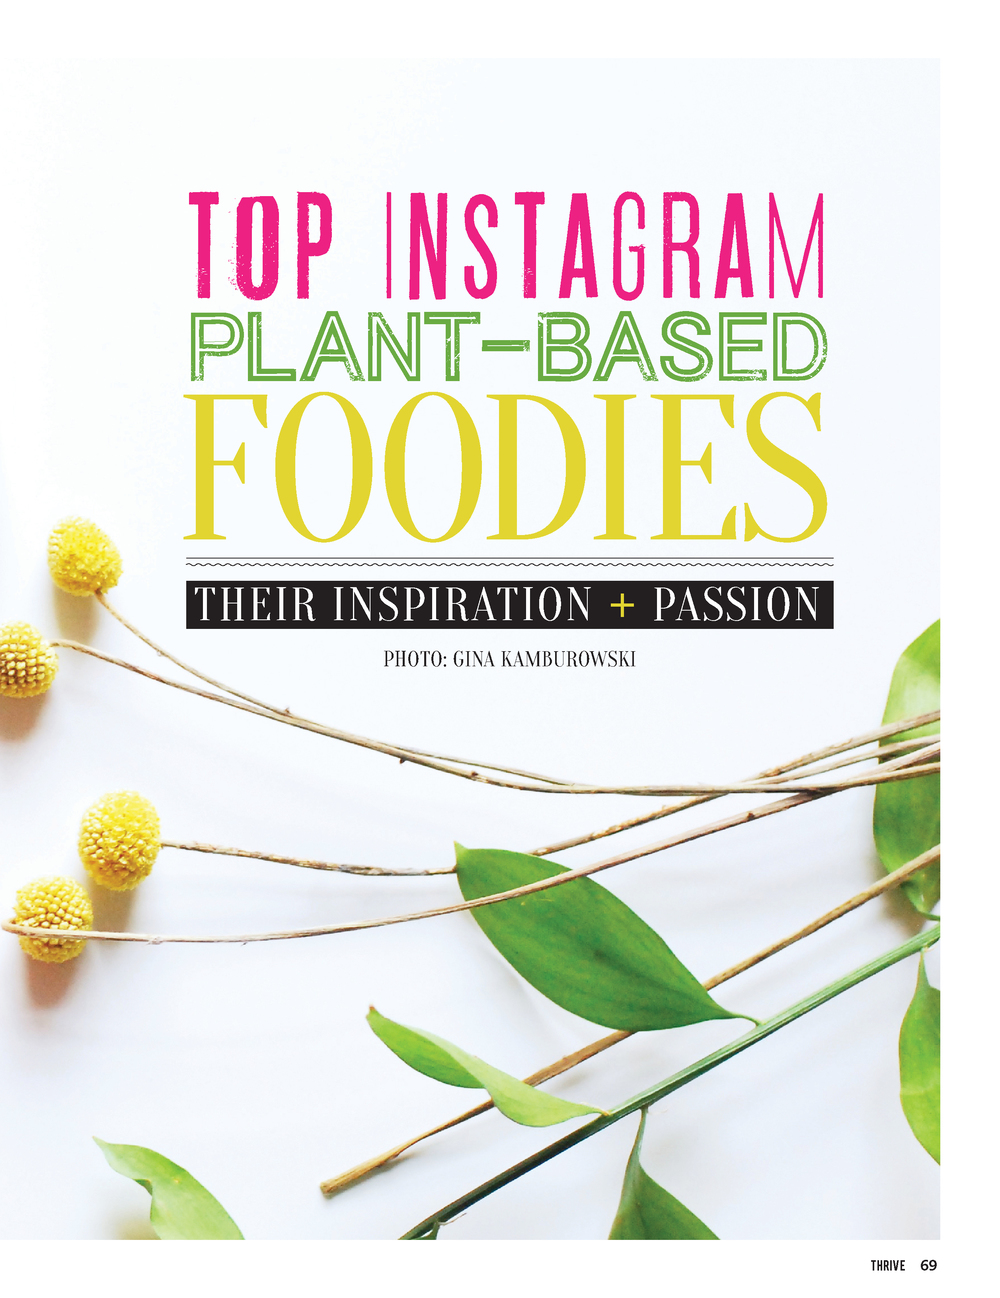 Thrive Magainze's top instagram plant-based foodies | hotforfoodblog.com